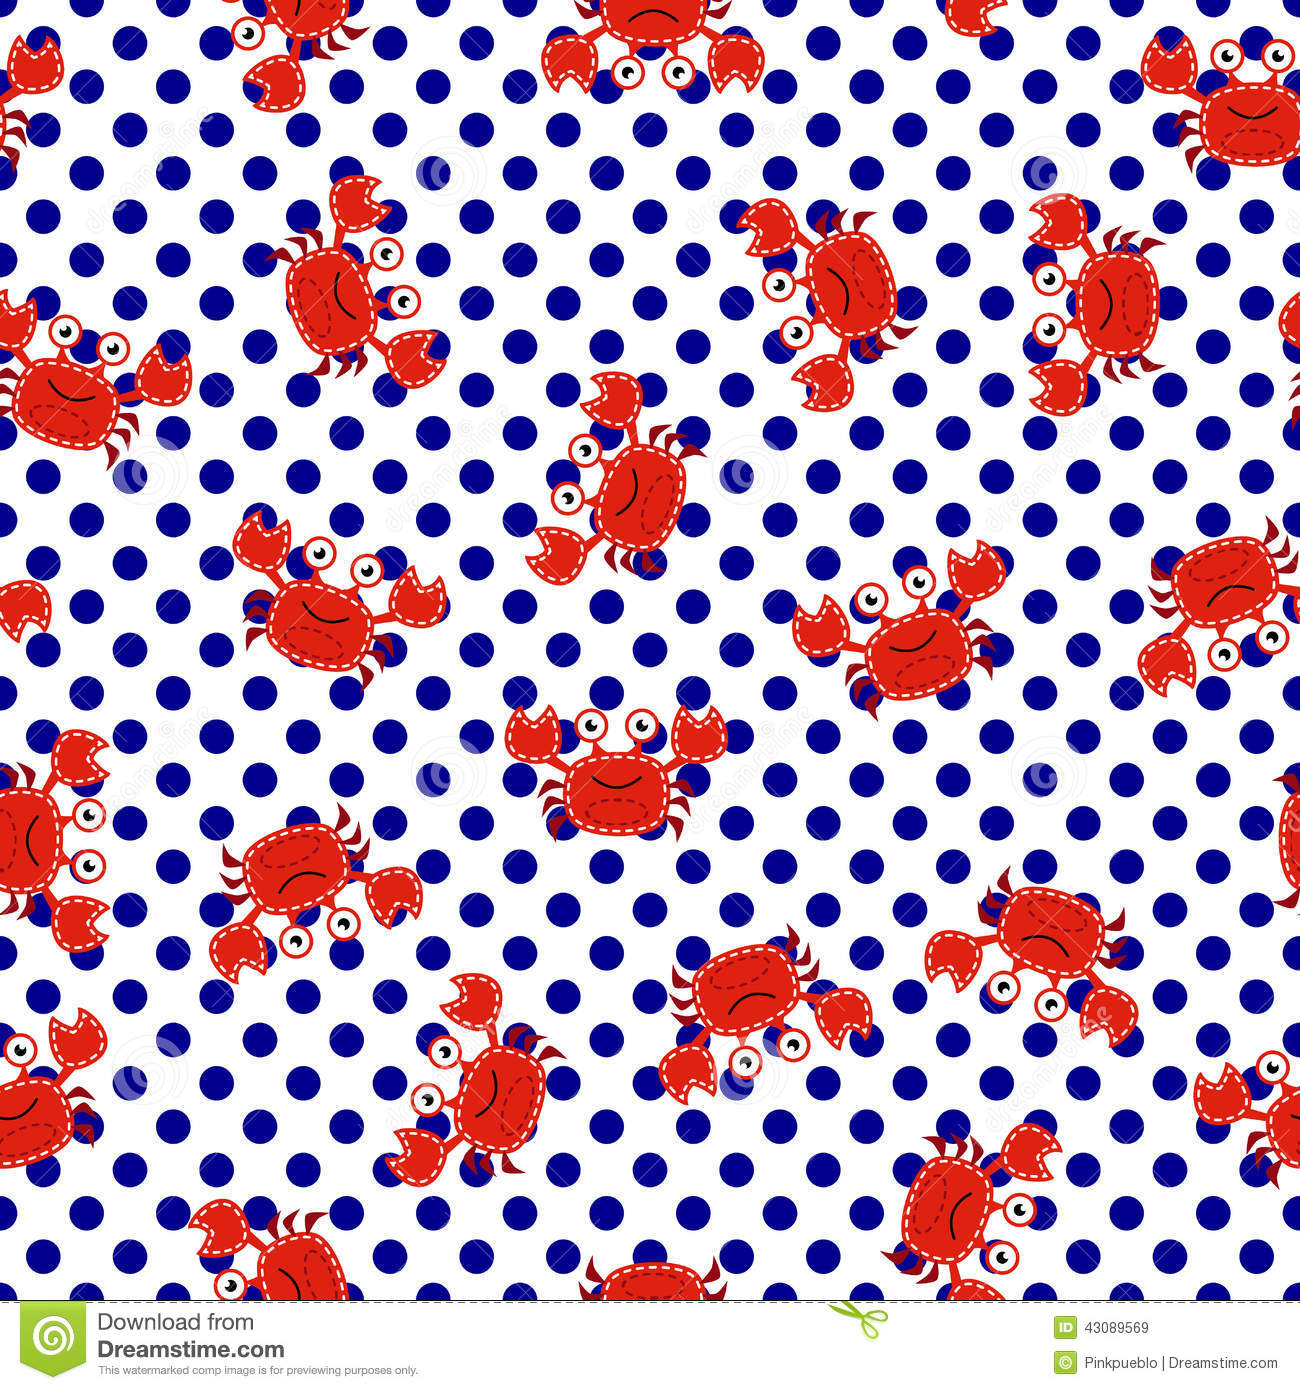 Lilly Pulitzer Fall Wallpaper Seamless Tileable Nautical Themed Vector Background Or